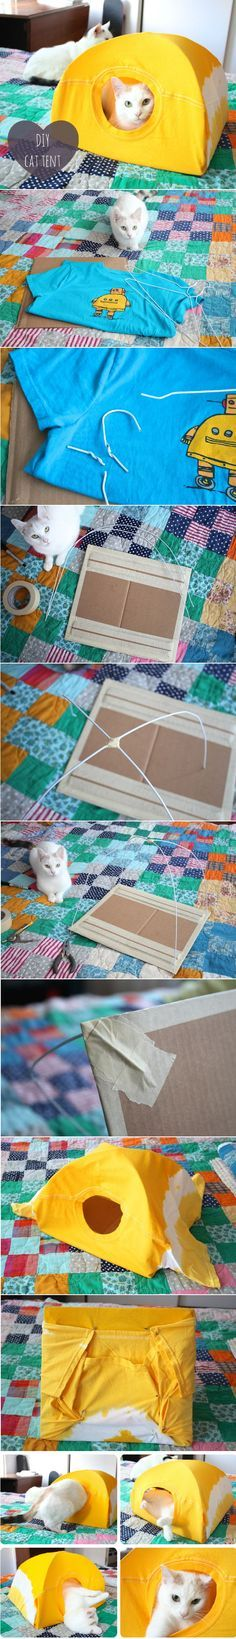 DIY Cat Tent made from your favorite old t shirt! Cats will love it as it has a cardboard bottom and it smells like you!